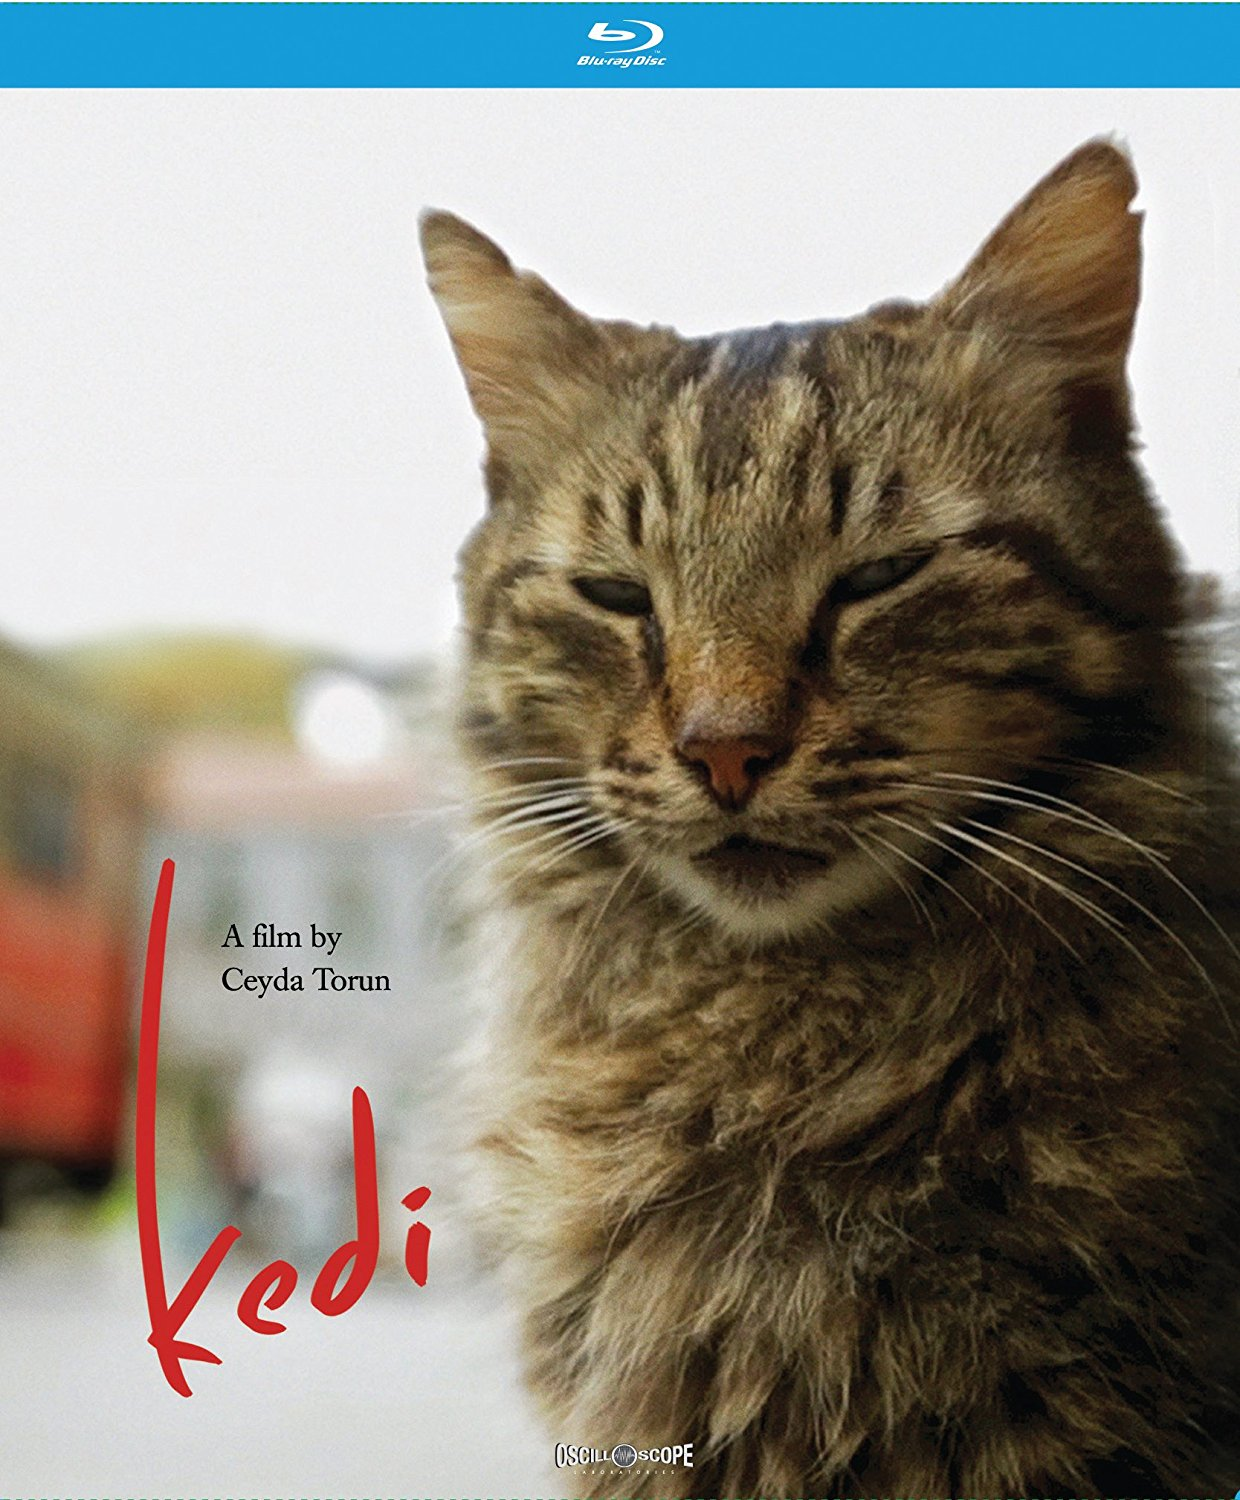 Kedi – Blu ray Edition